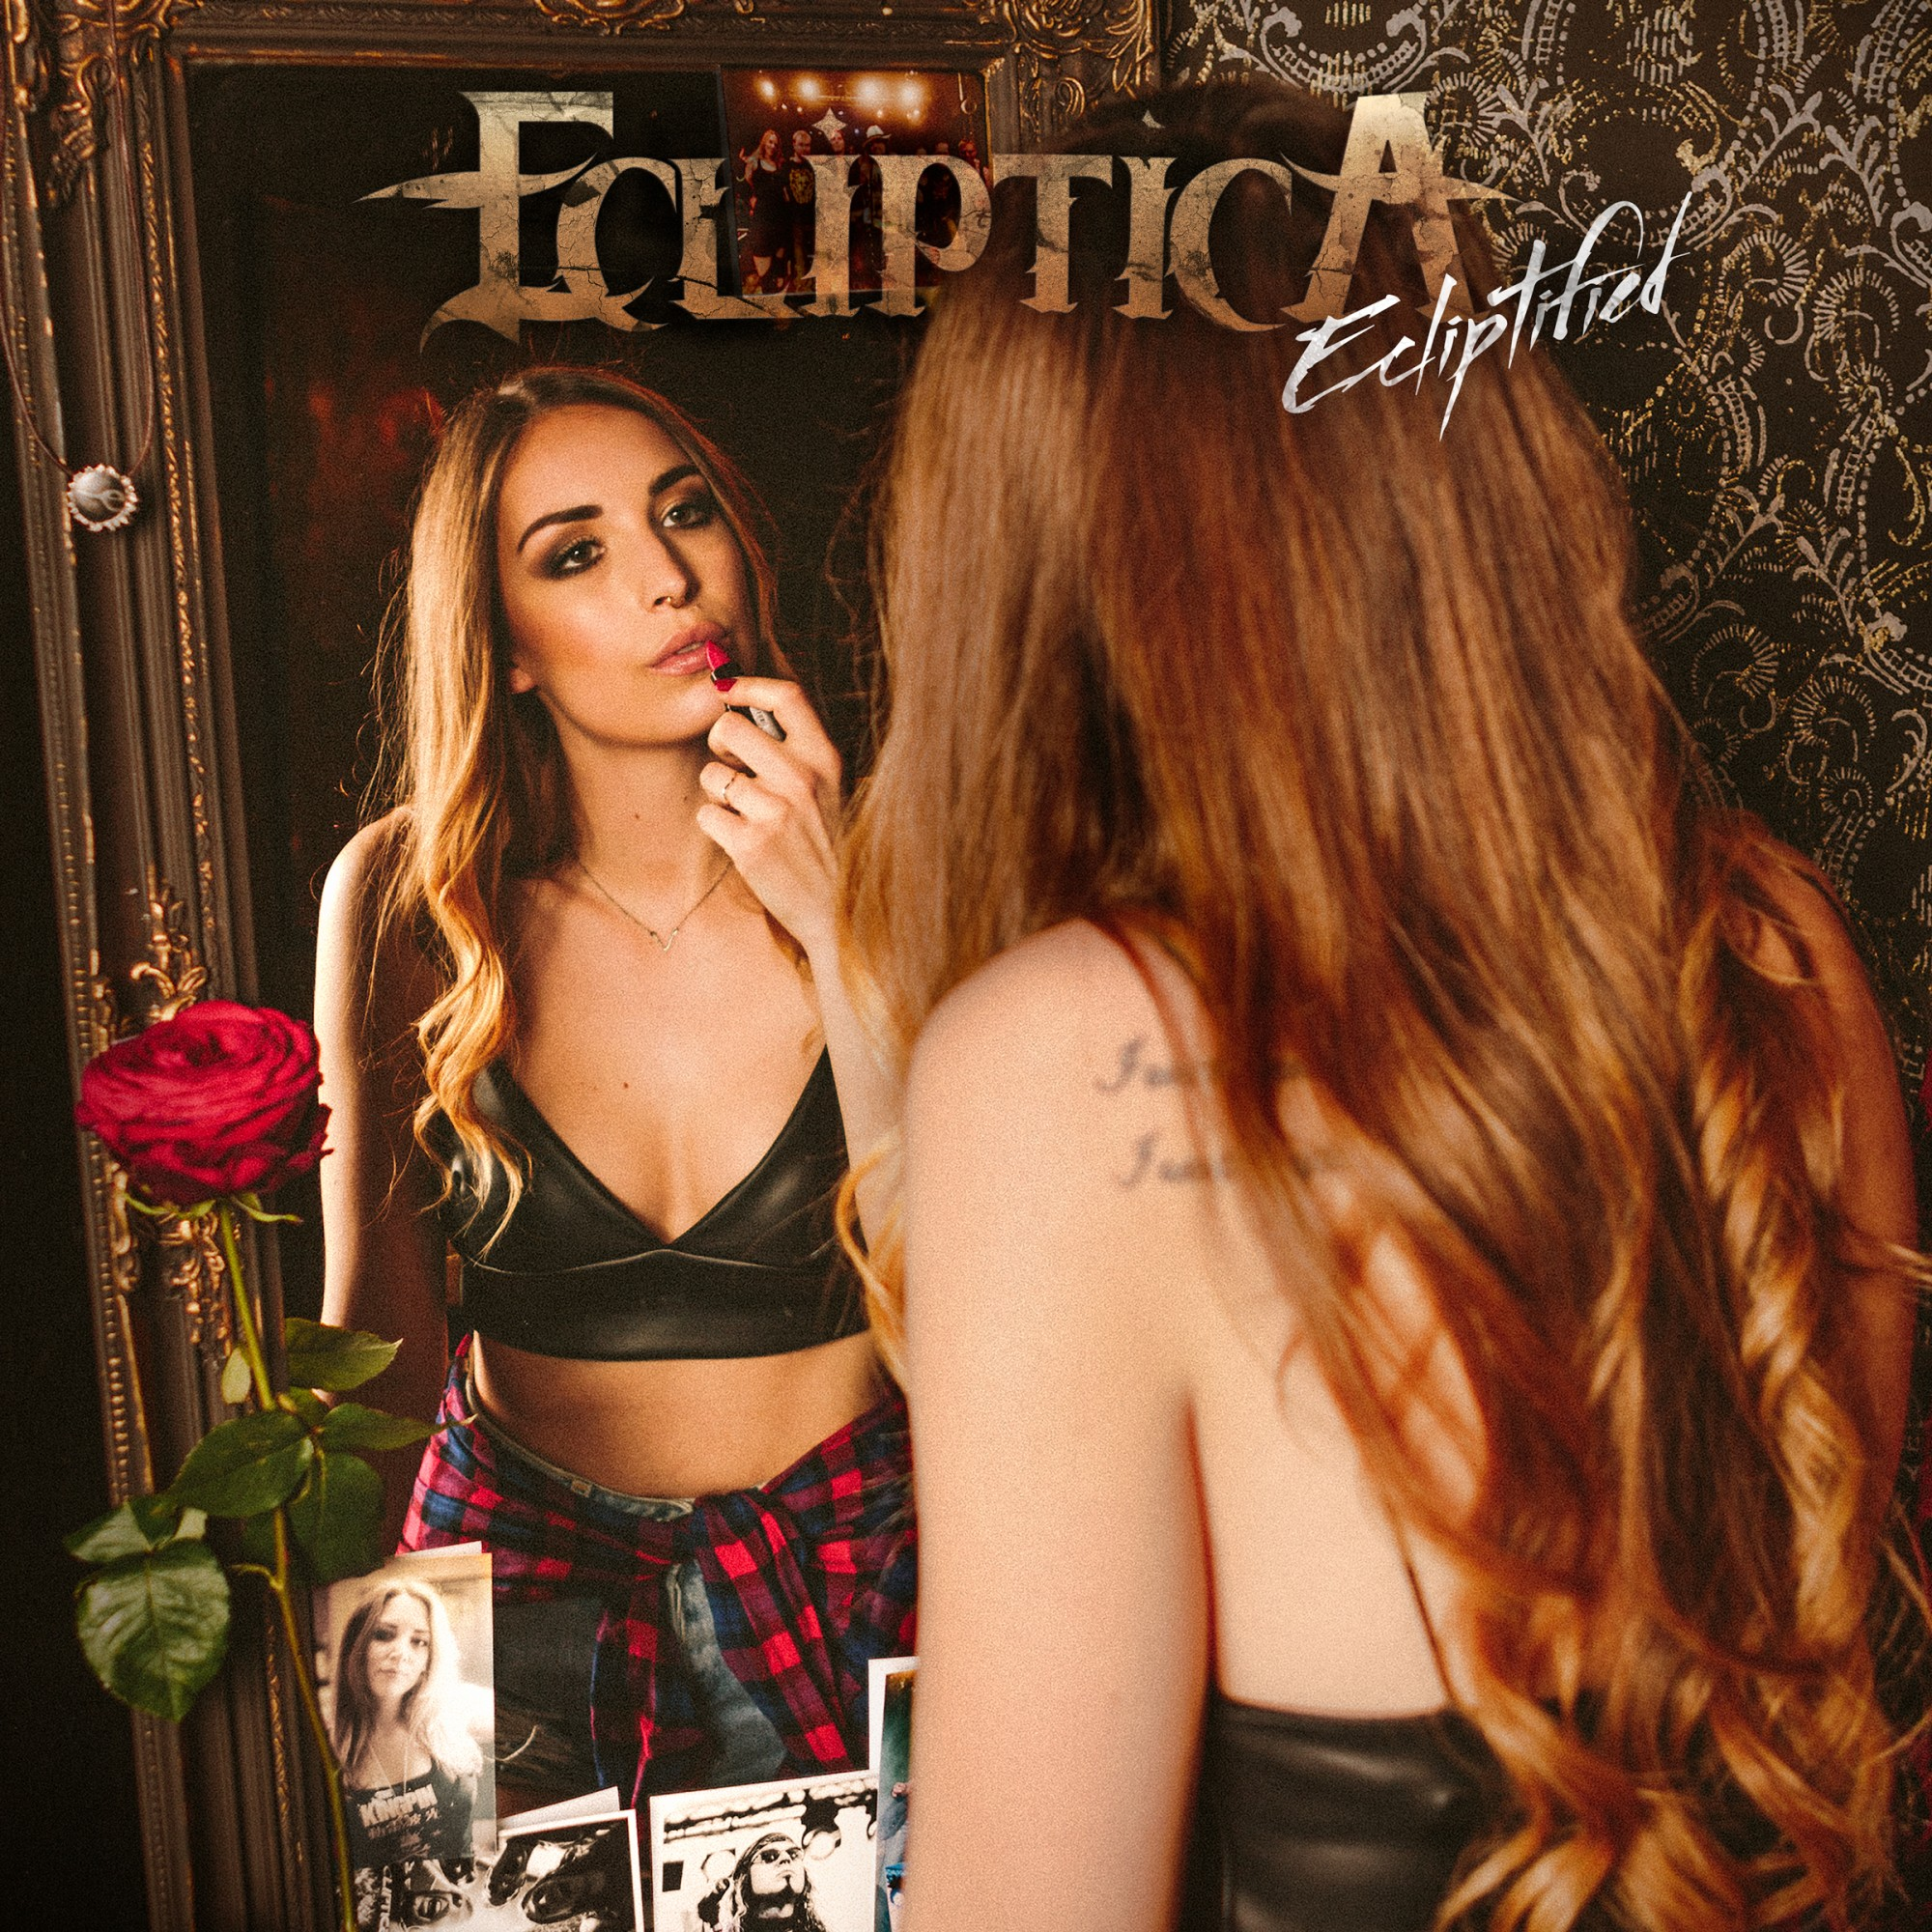 ECLIPTICA - Ecliptified // Album, 2016/01/15 // MMP003 // EAN: 9008798192908